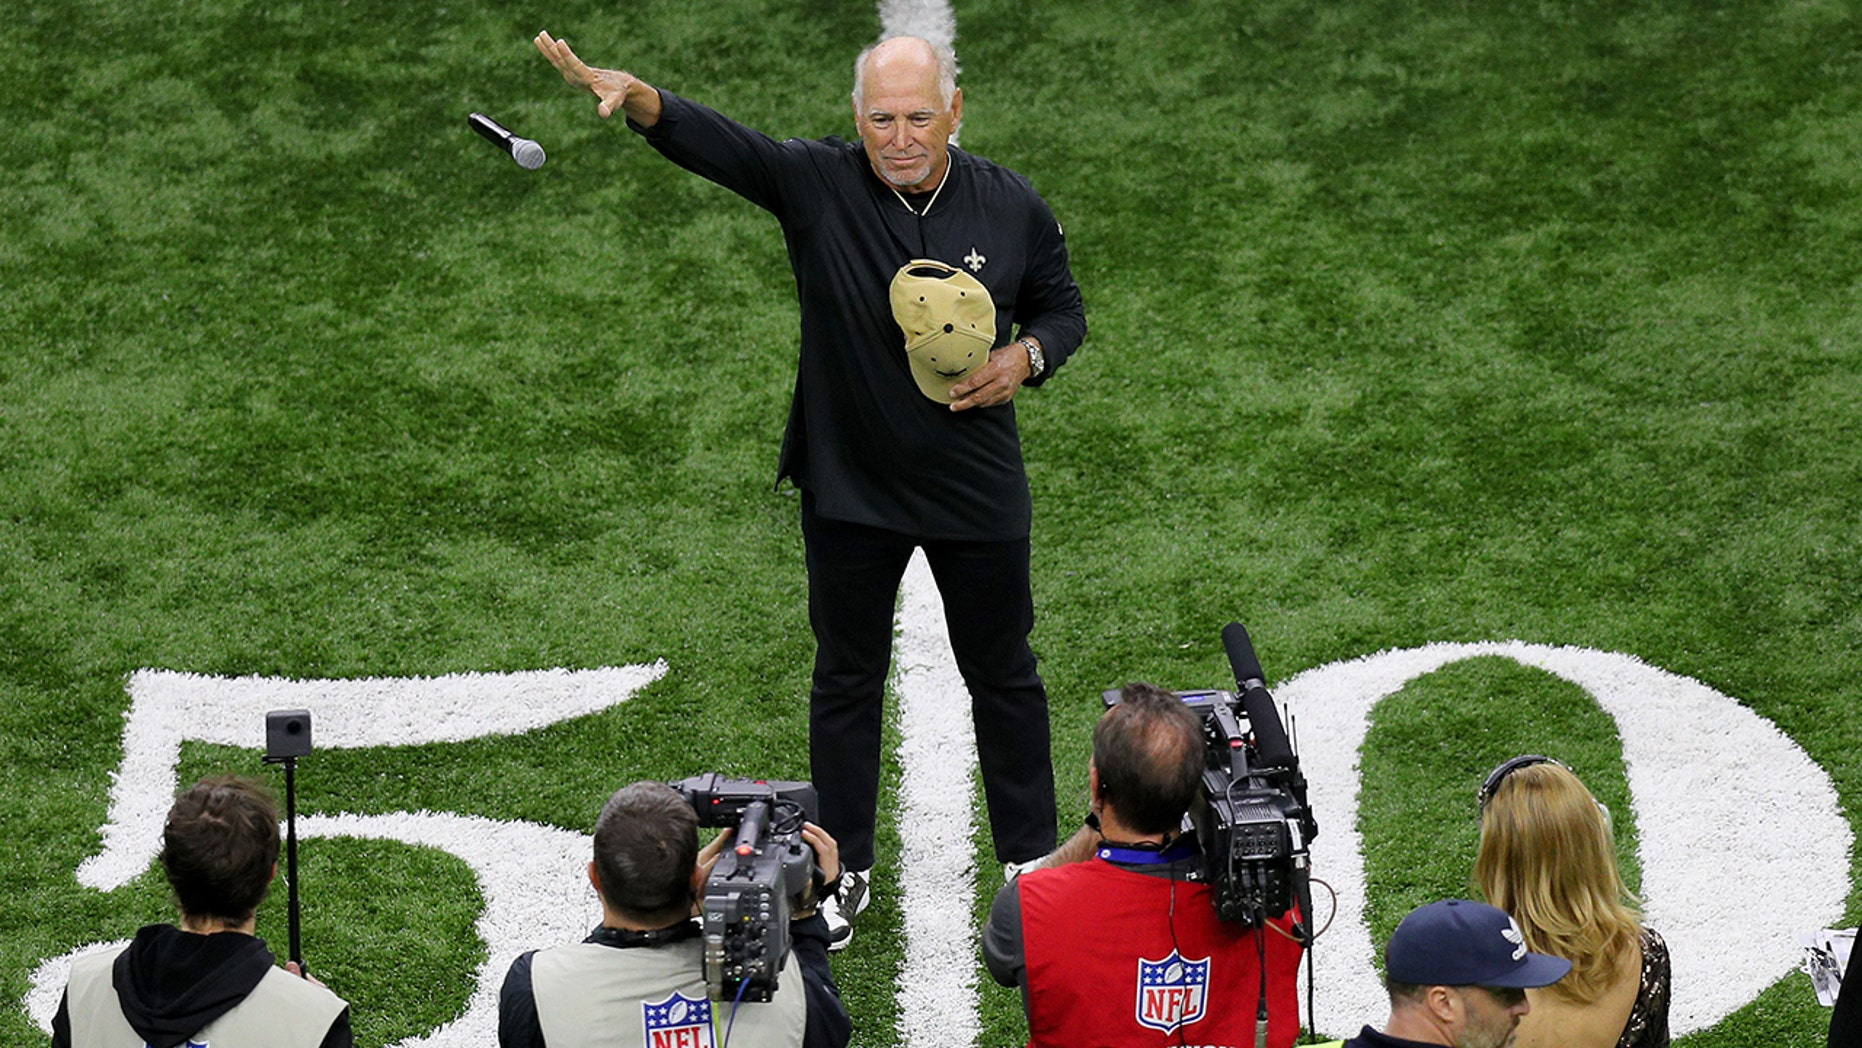 NEW ORLEANS, LOUISIANA - JANUARY 20: Musician Jimmy Buffett sings the national anthem prior to the NFC Championship game between the Los Angeles Rams and the New Orleans Saints at the Mercedes-Benz Superdome on January 20, 2019 in New Orleans, Louisiana. (Photo by Jonathan Bachman/Getty Images)